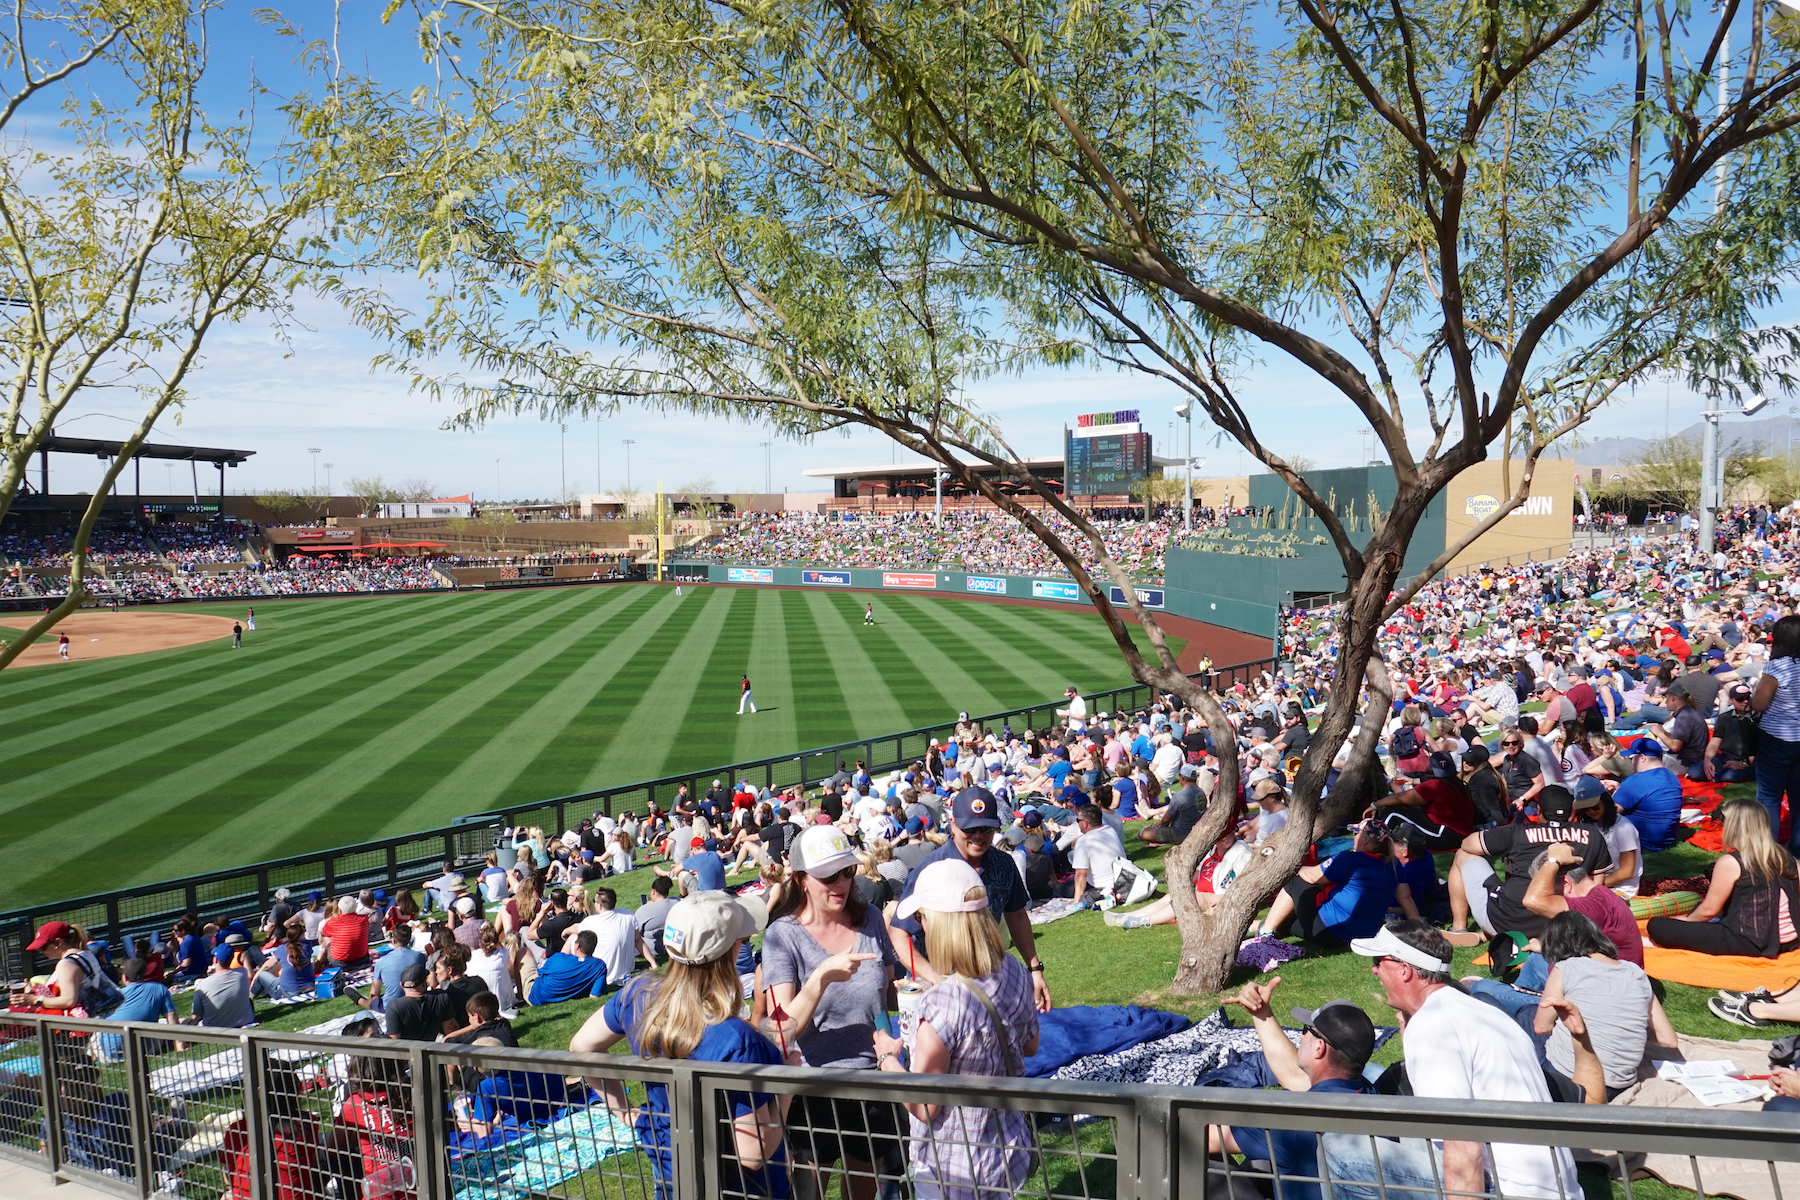 Salt River Fields Park